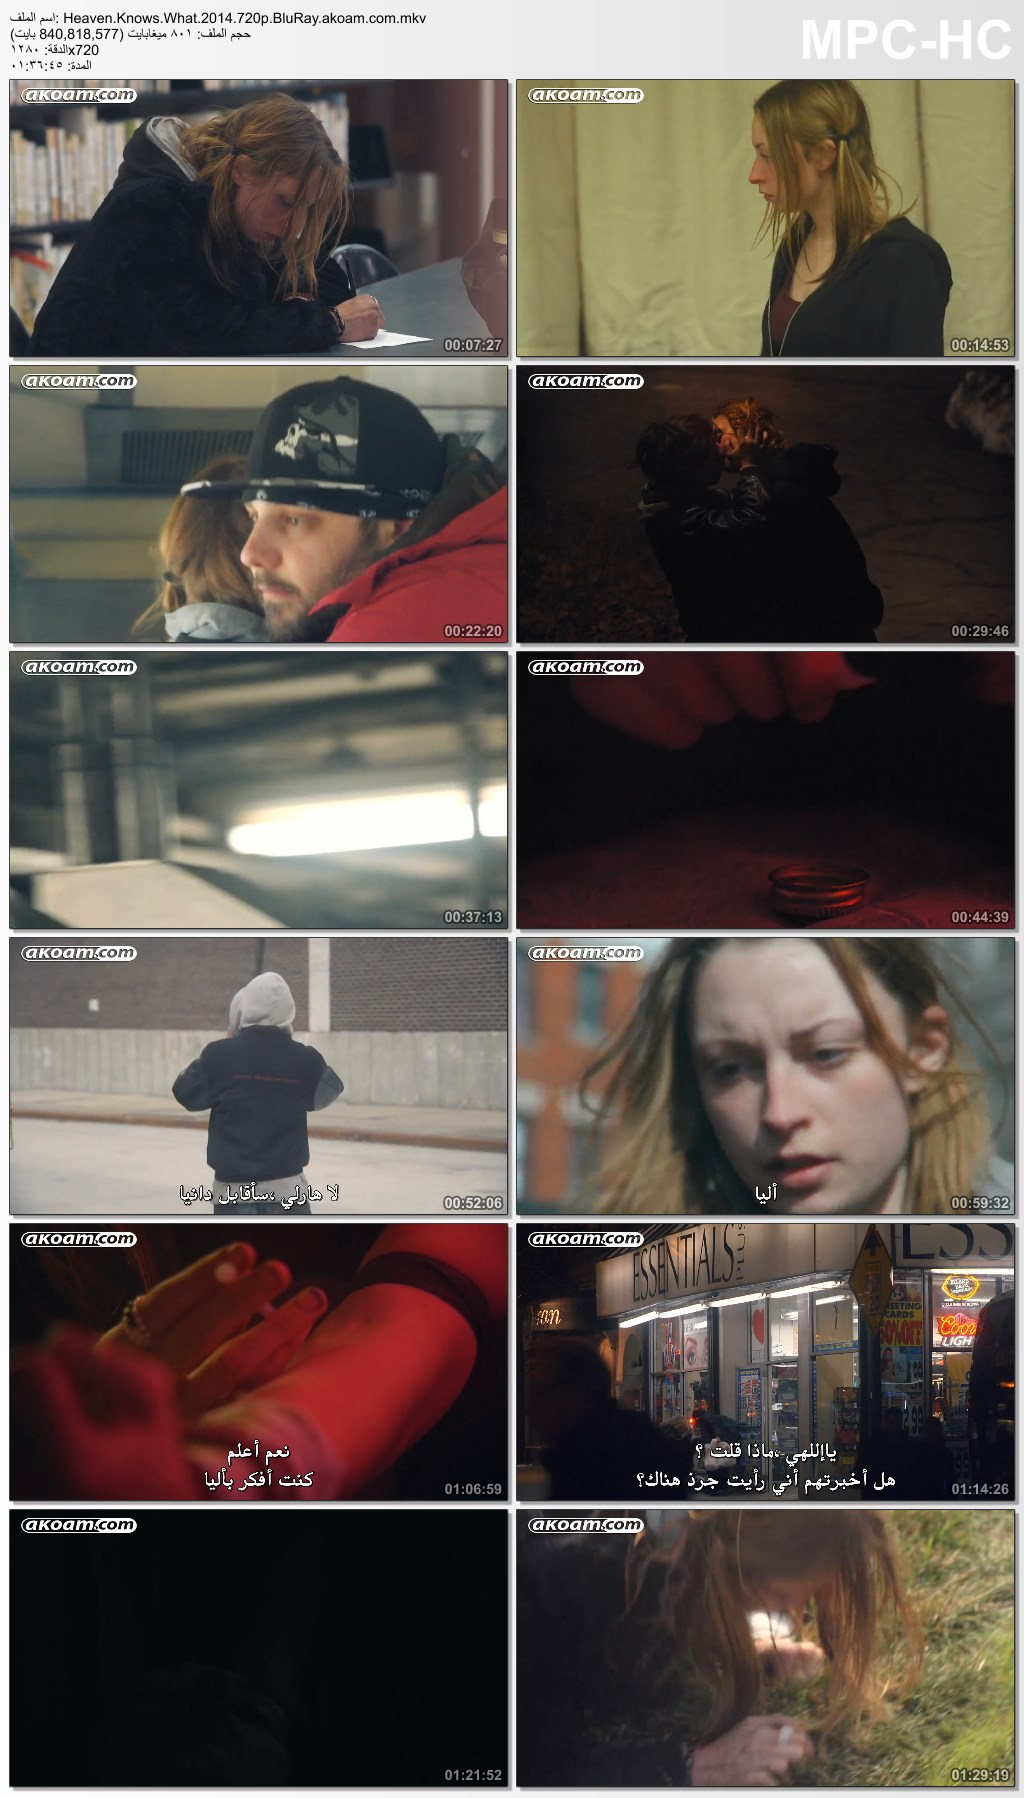 Heaven Knows What,Heaven Knows What 2014,الدراما,البلوراي